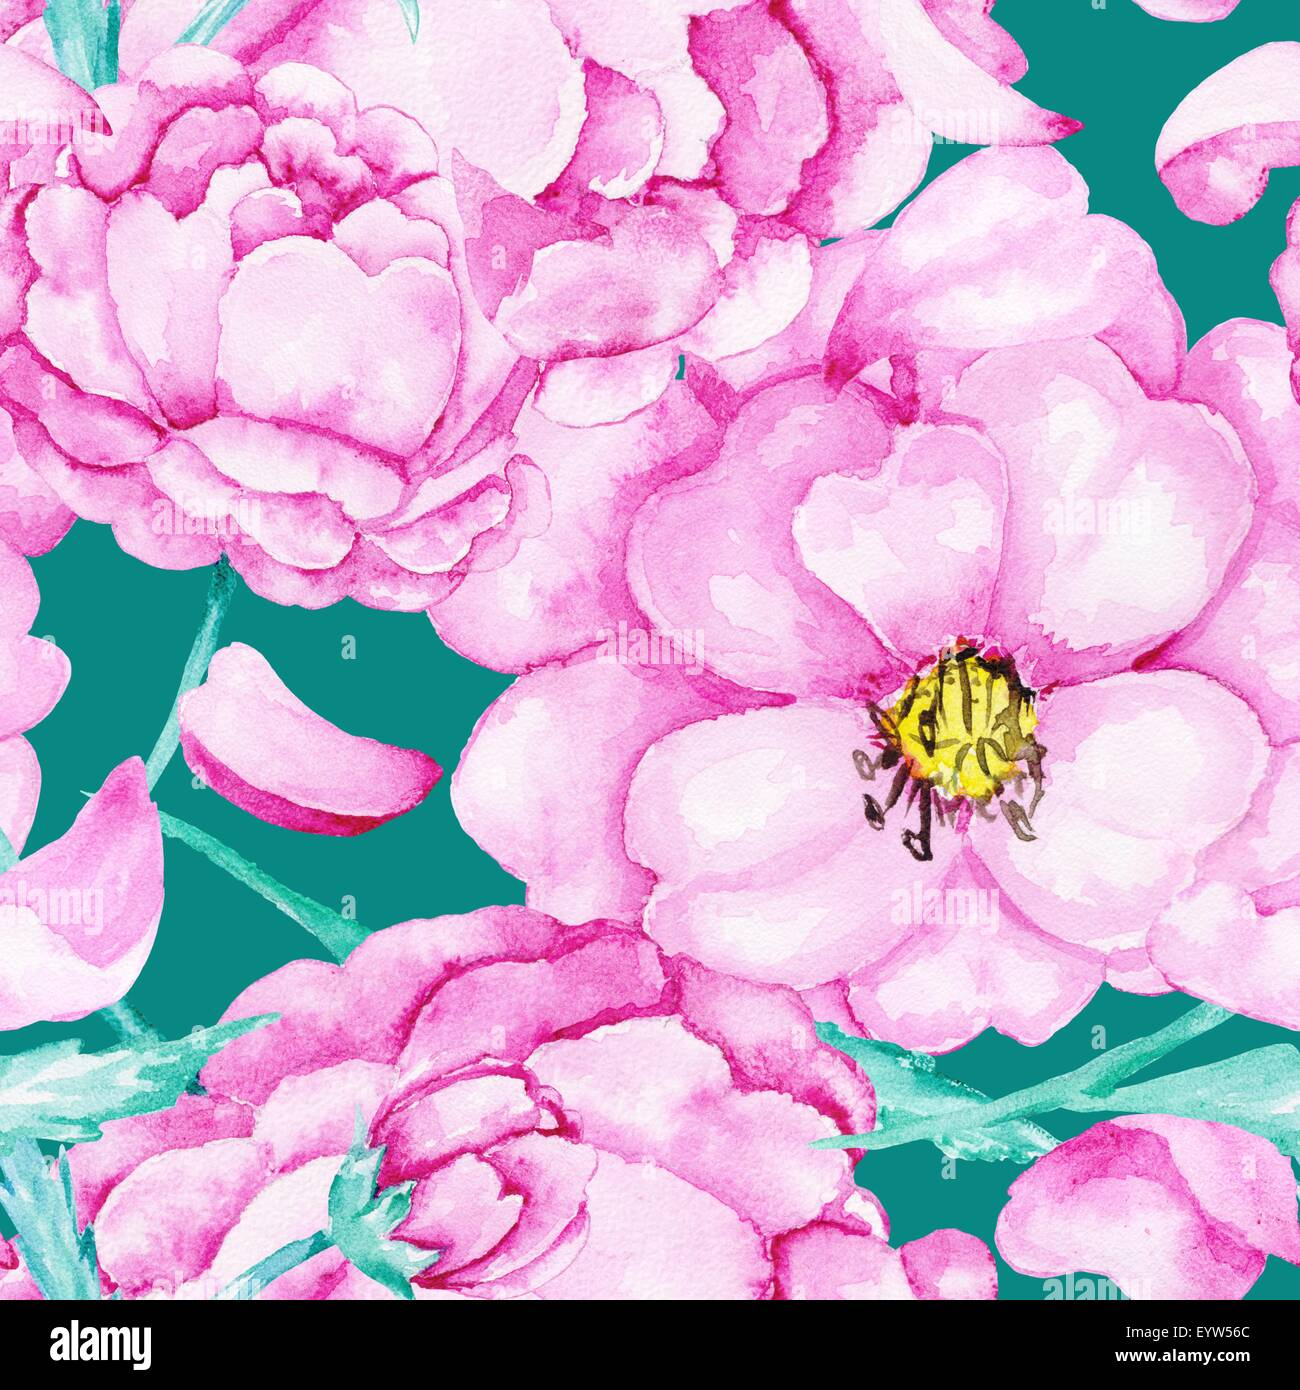 Turquoise background with pink flowers for wallpaper and textile turquoise background with pink flowers for wallpaper and textile design mightylinksfo